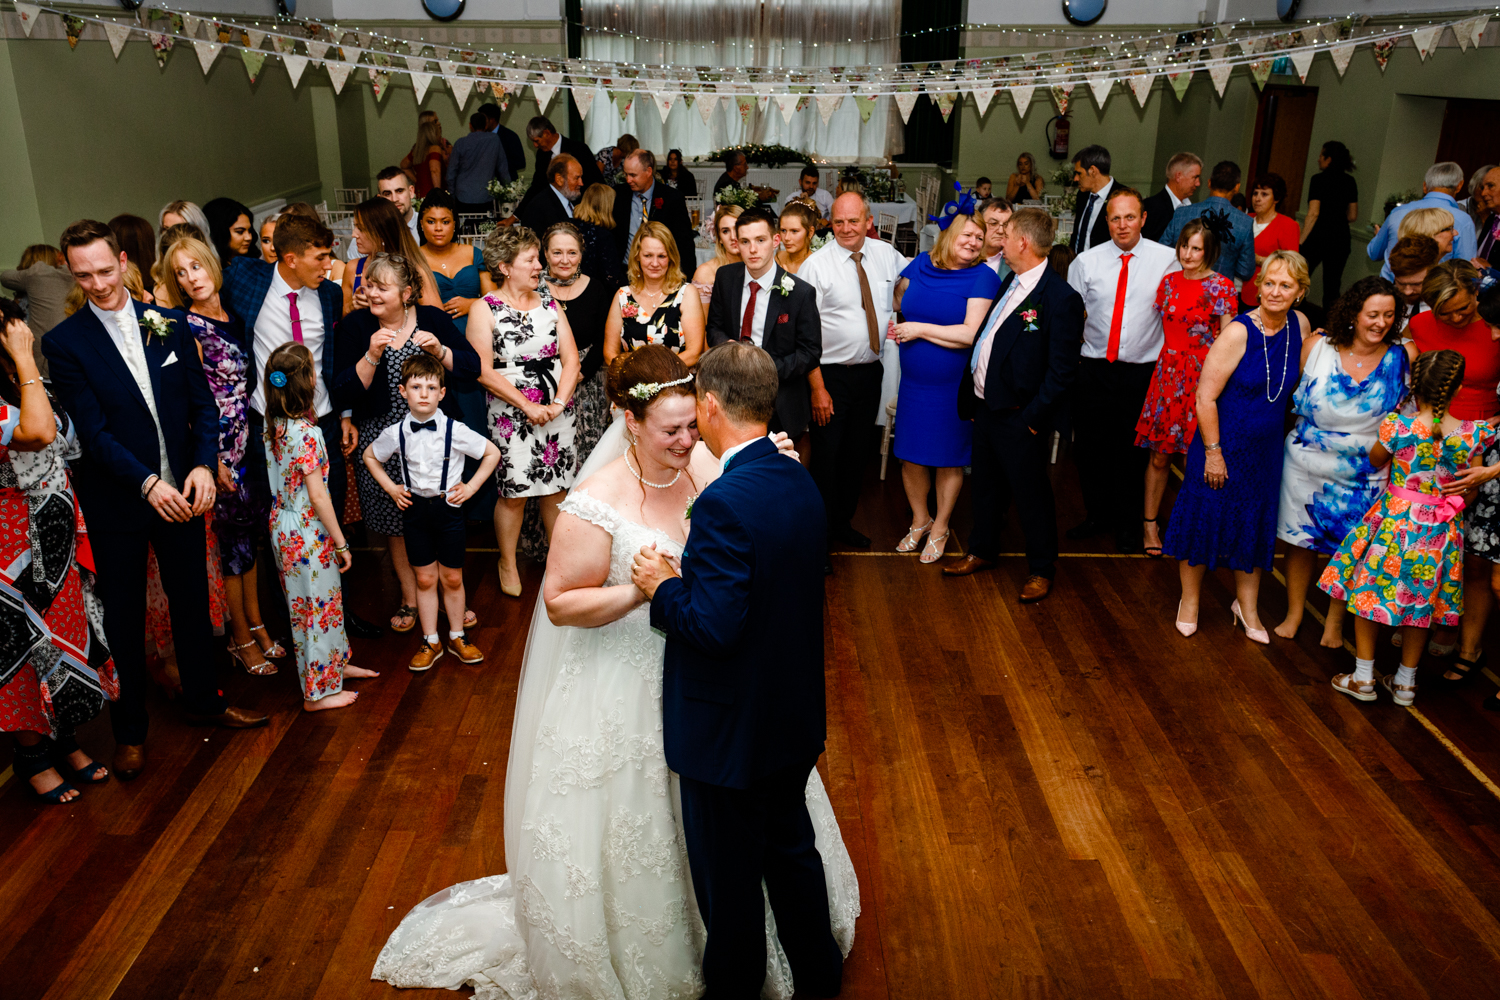 Lancashire-wedding-photographer-adele-and-alex-139.jpg